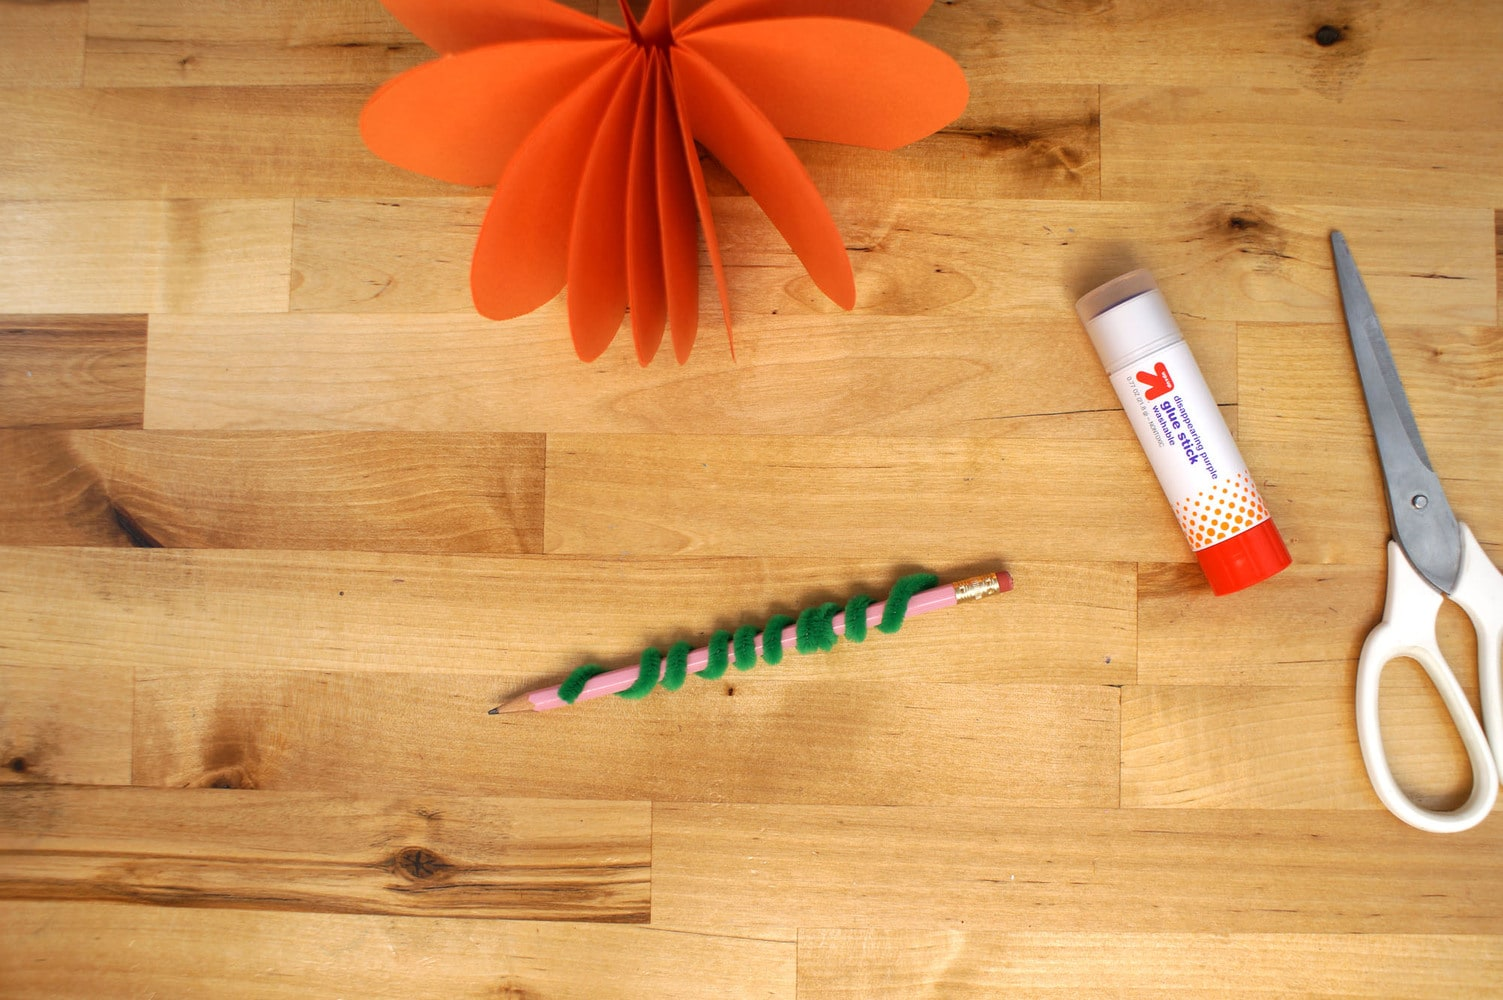 curl a green fuzzy stick around a pencil to form the stem of the pumpkin